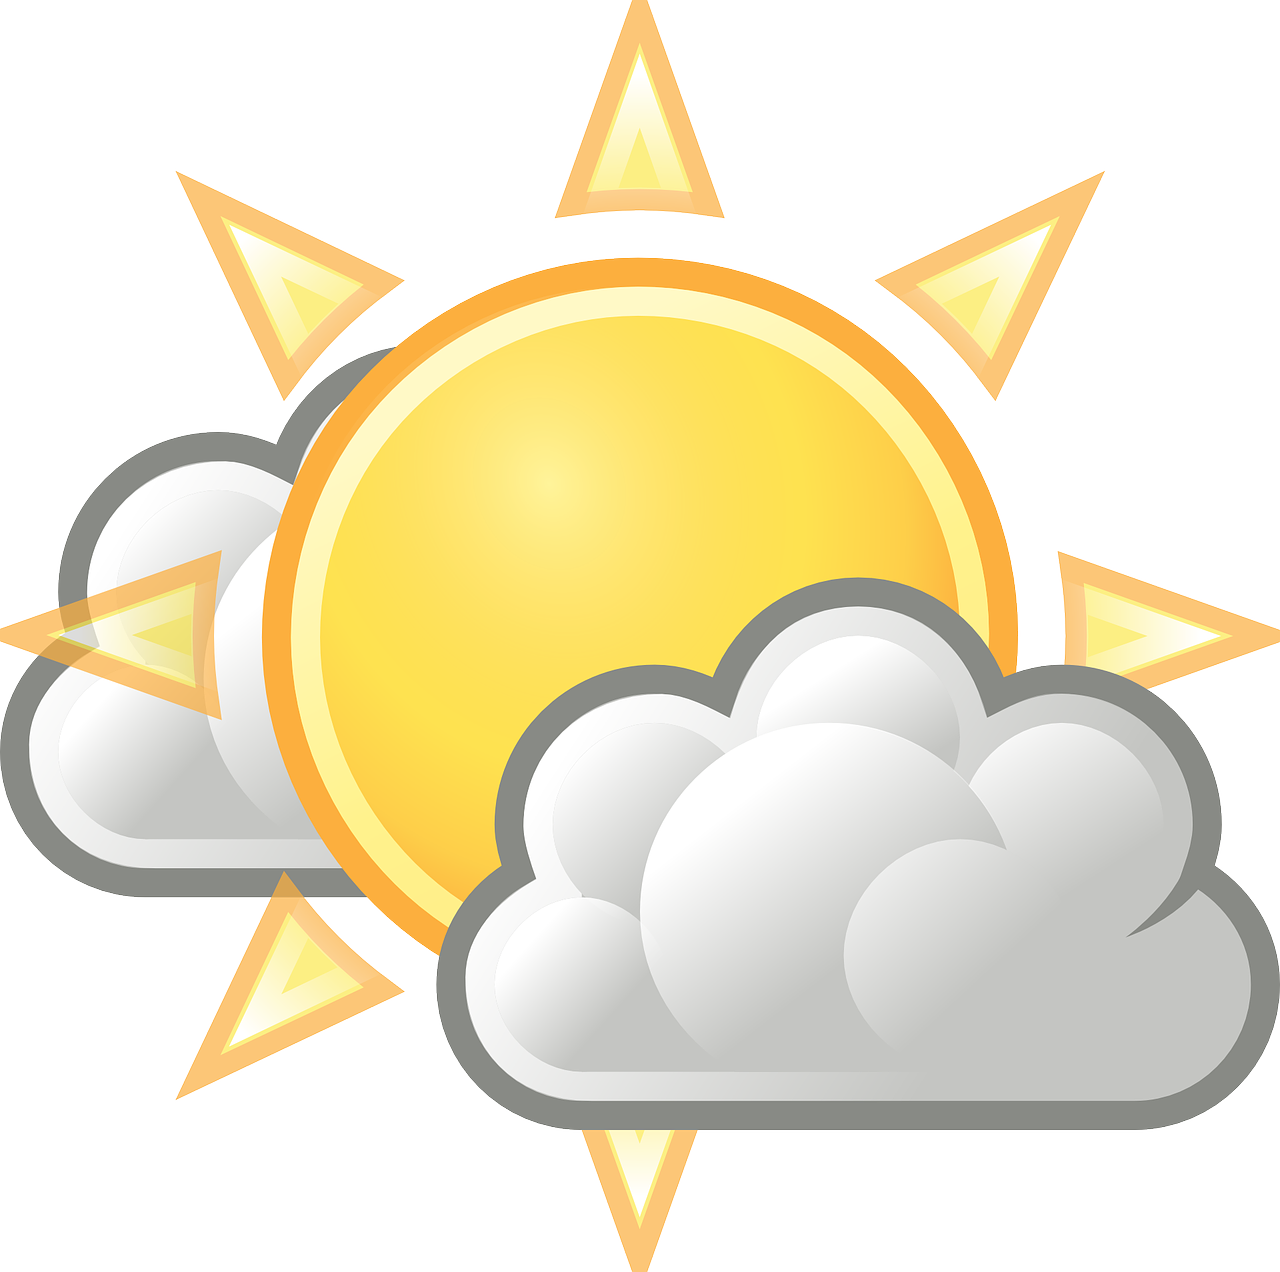 png Weekend clipart sunrise sunset. Your weather forecast newcastle